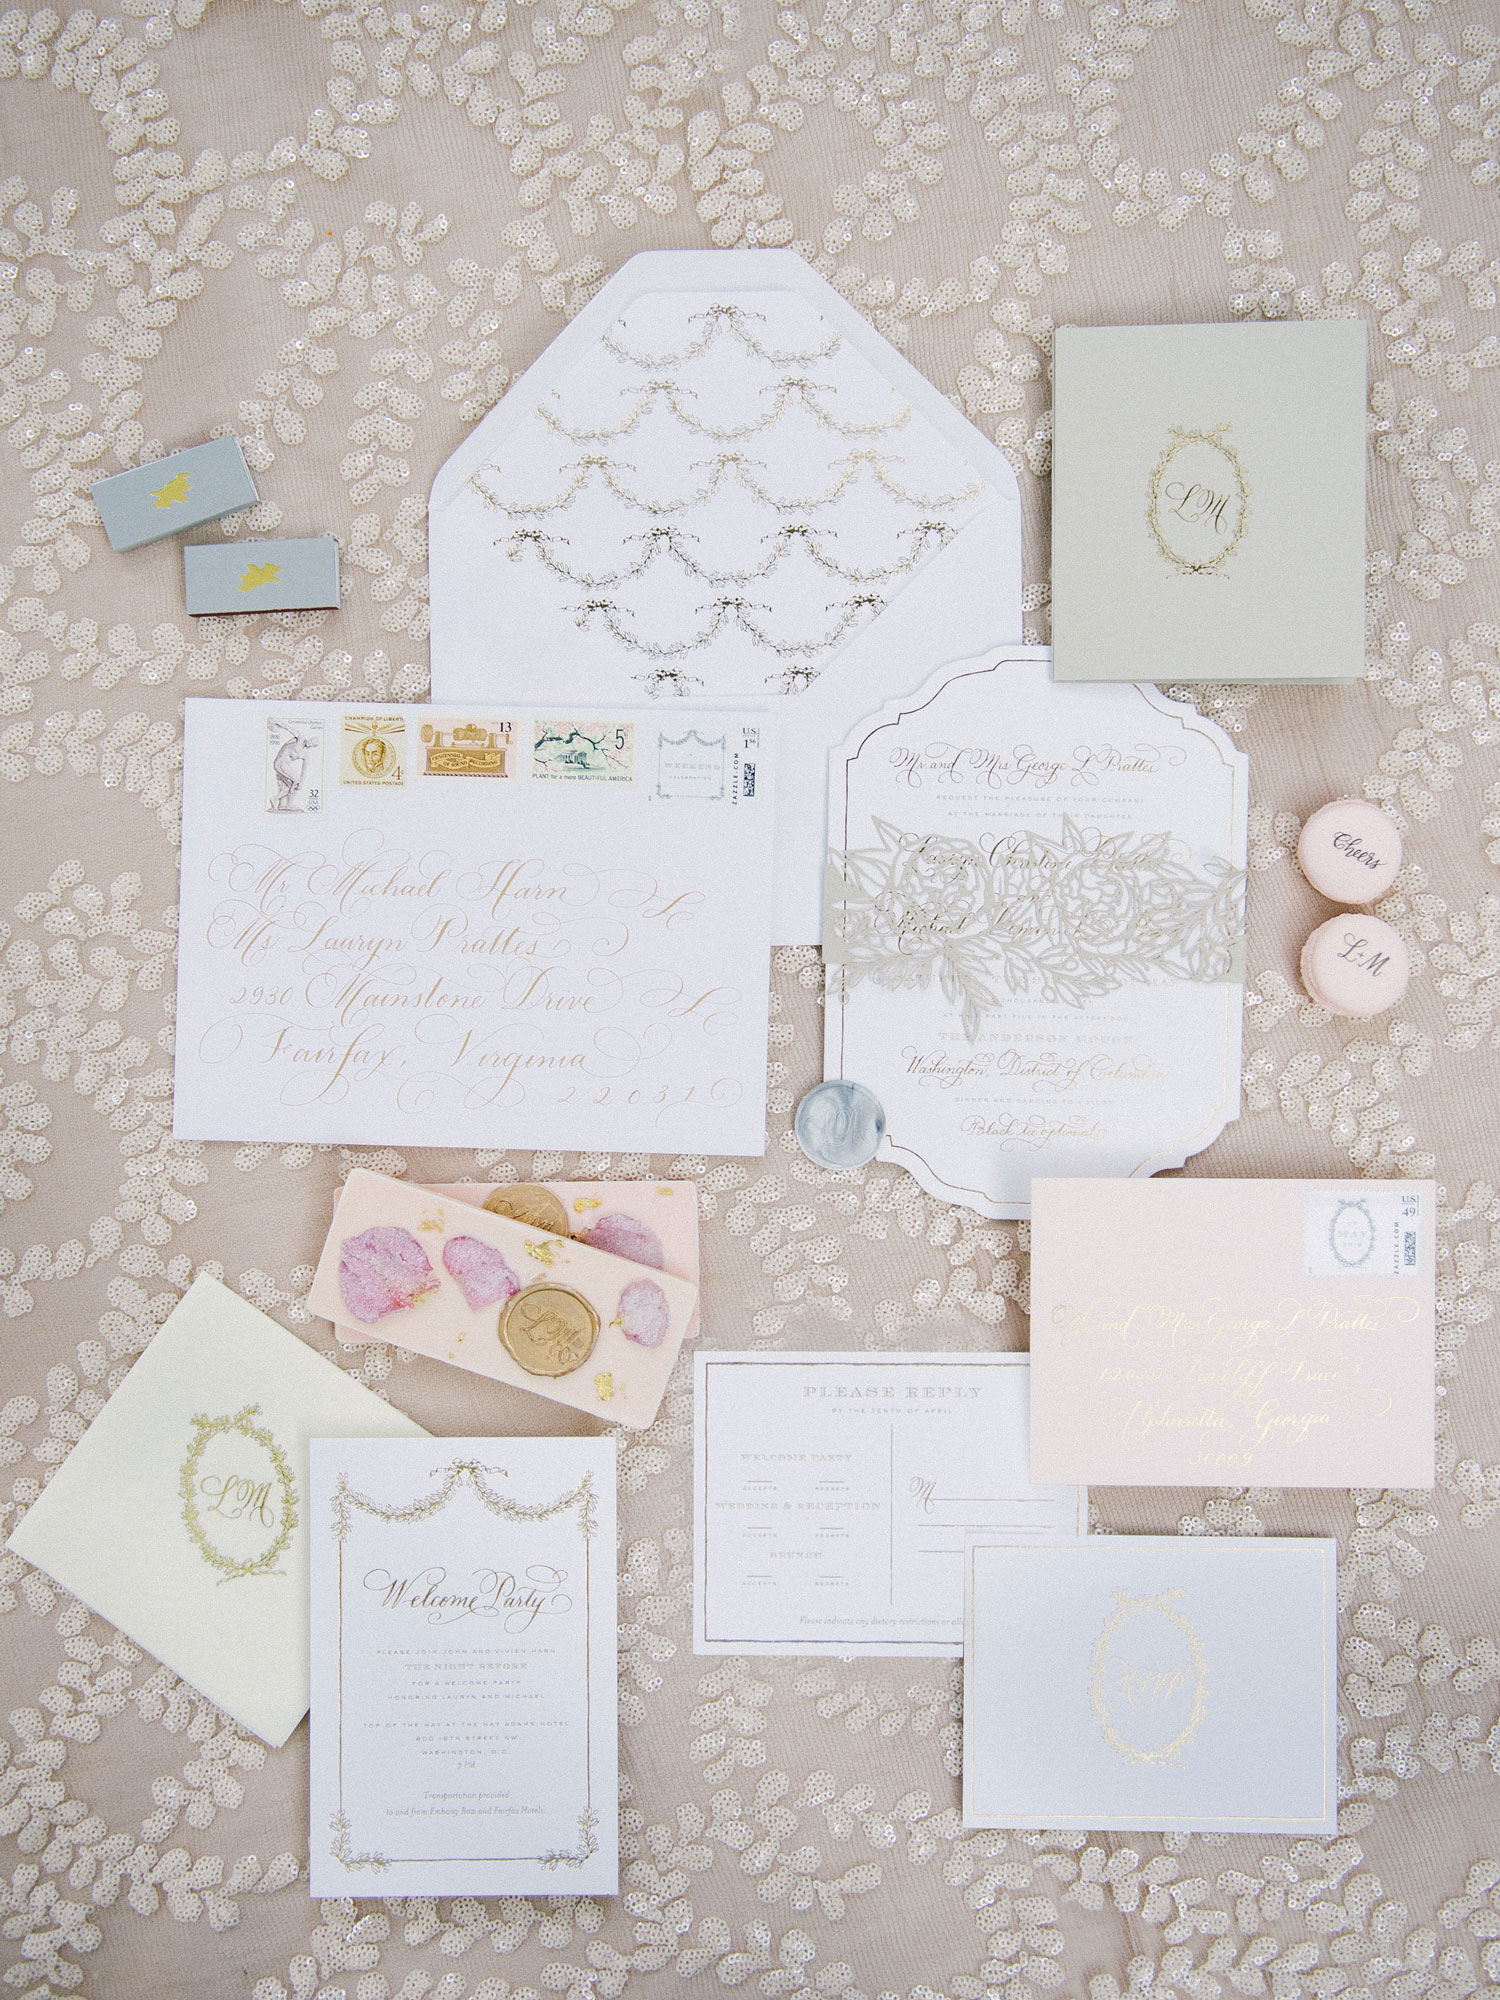 Wedding Ideas: Pastel Color Palette for Spring - Inside Weddings